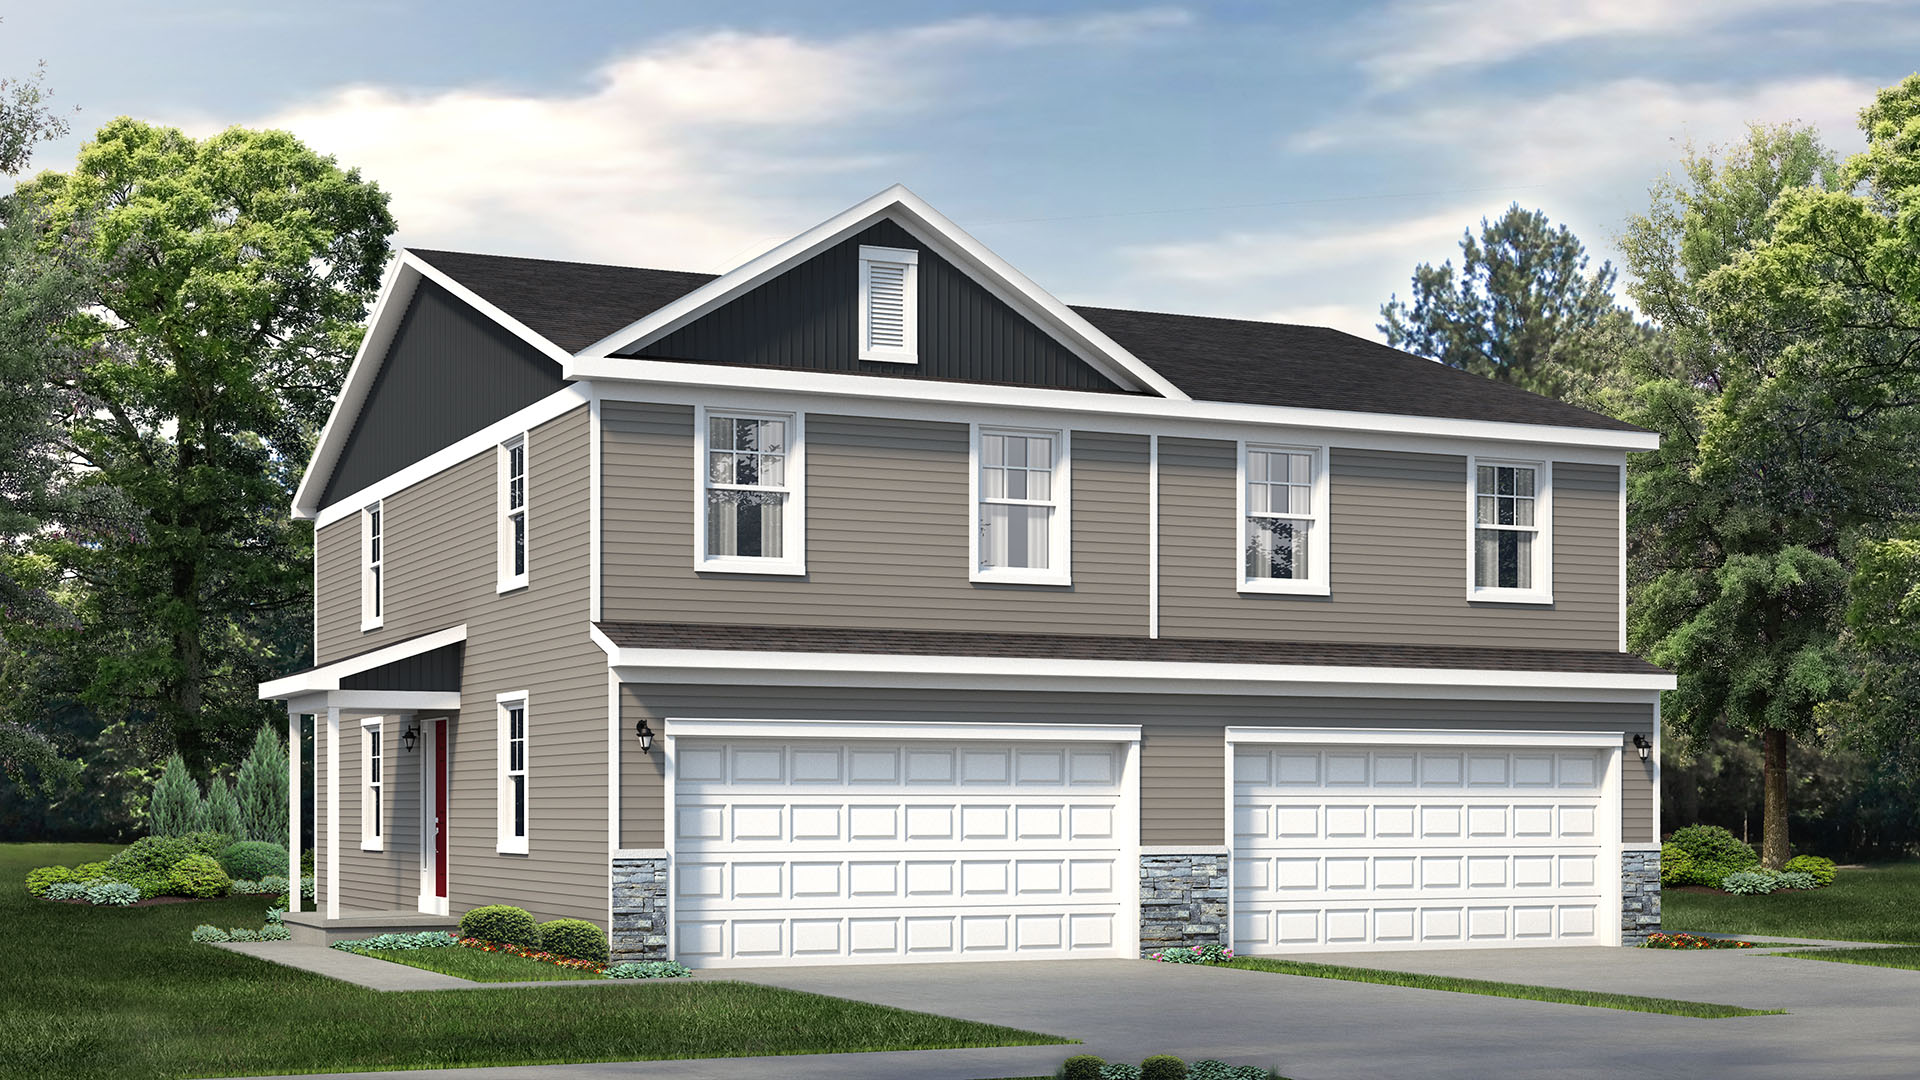 Featured Floor Plan: Richfield at Harvest Glen